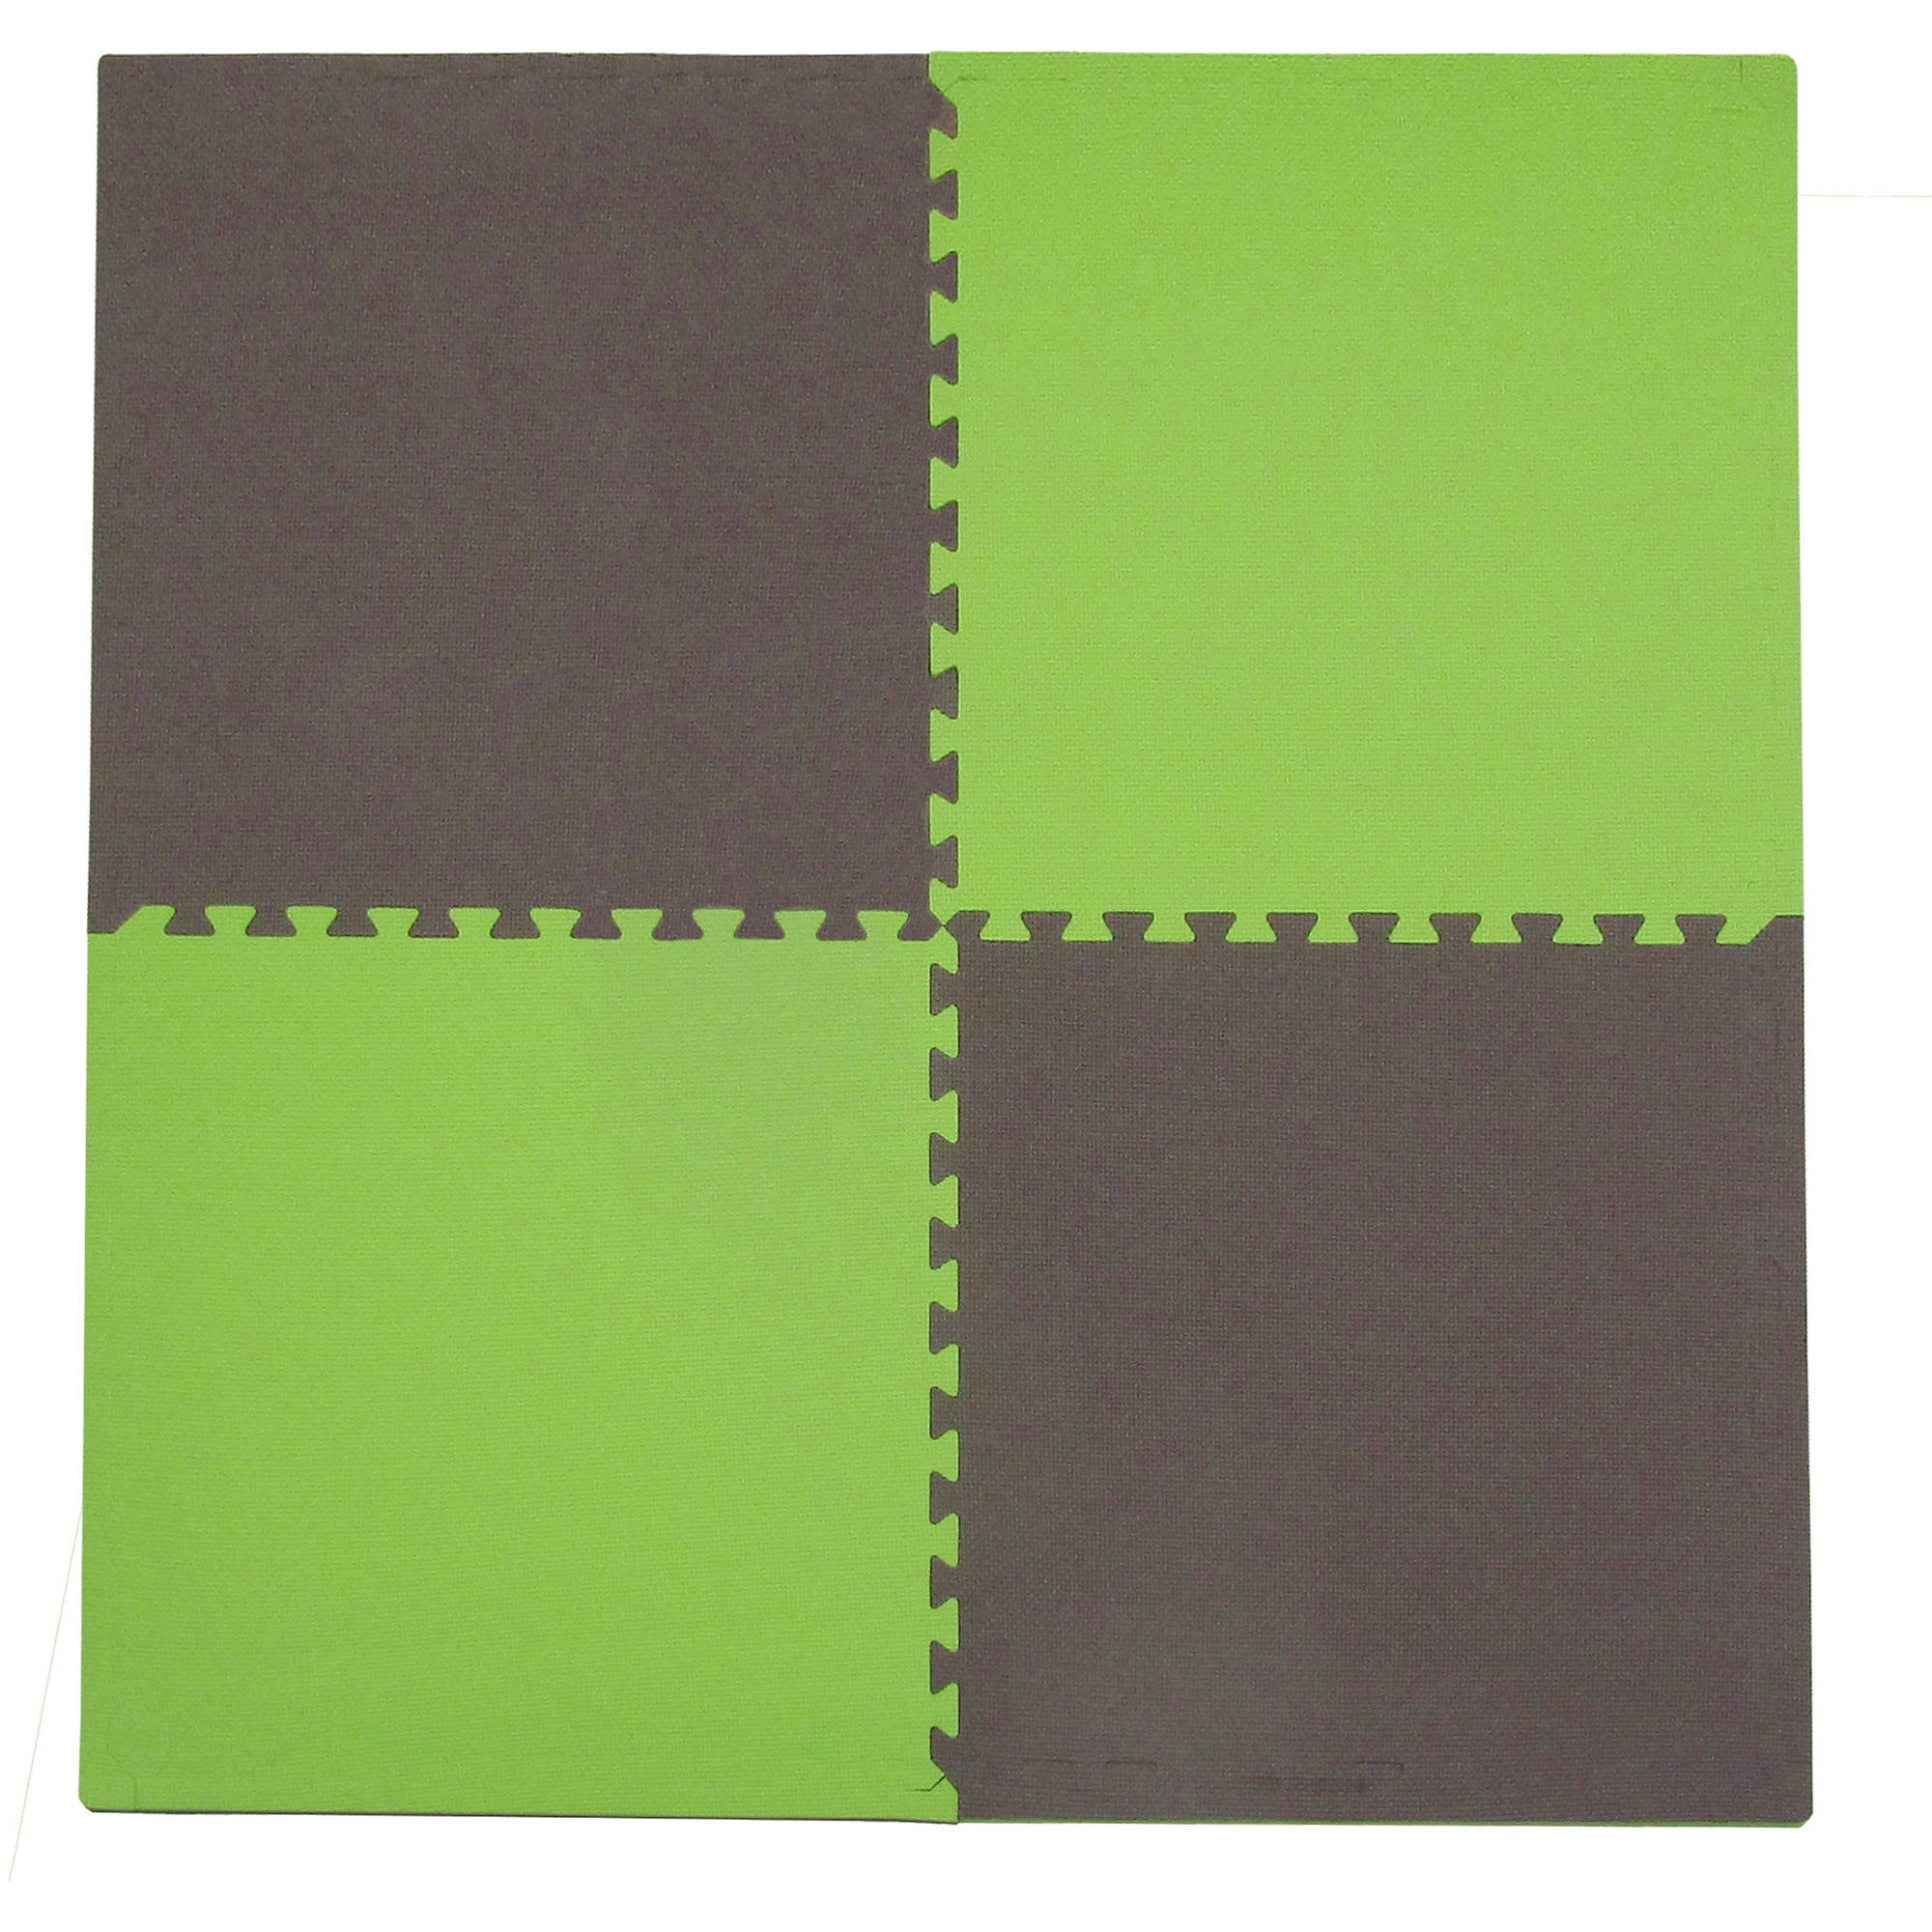 Tadpoles XL Foam Play Mat Set, 4 Pieces